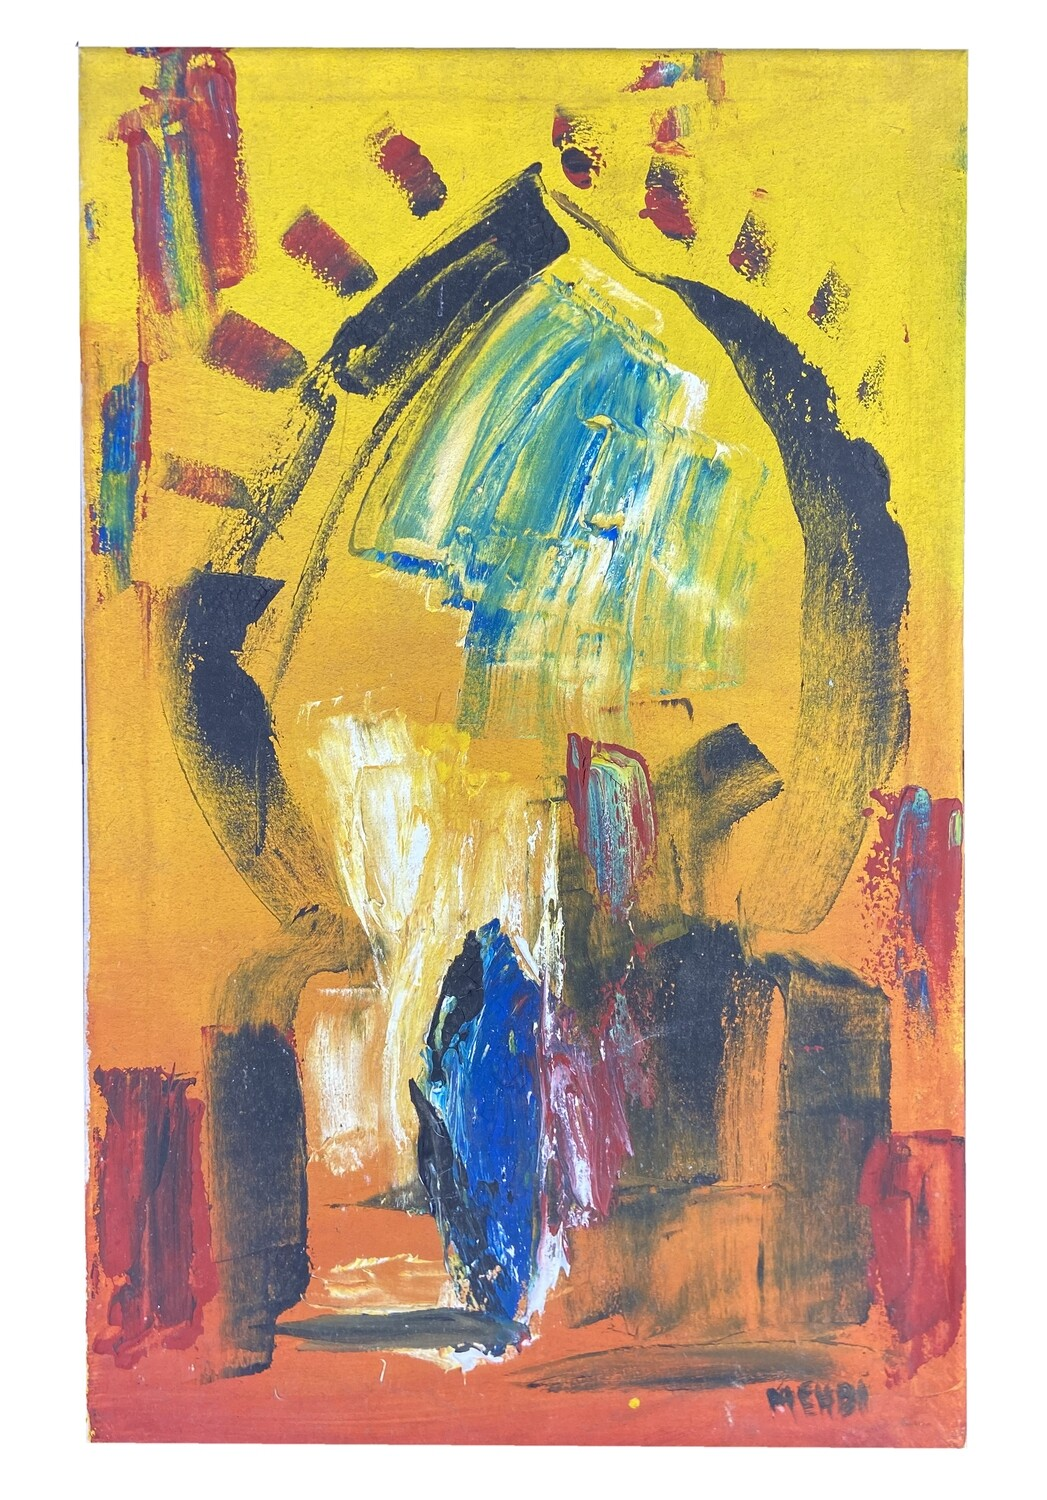 Streets of Fez - Yellow Abstract Textured Multi-Media Hand painted Canvas